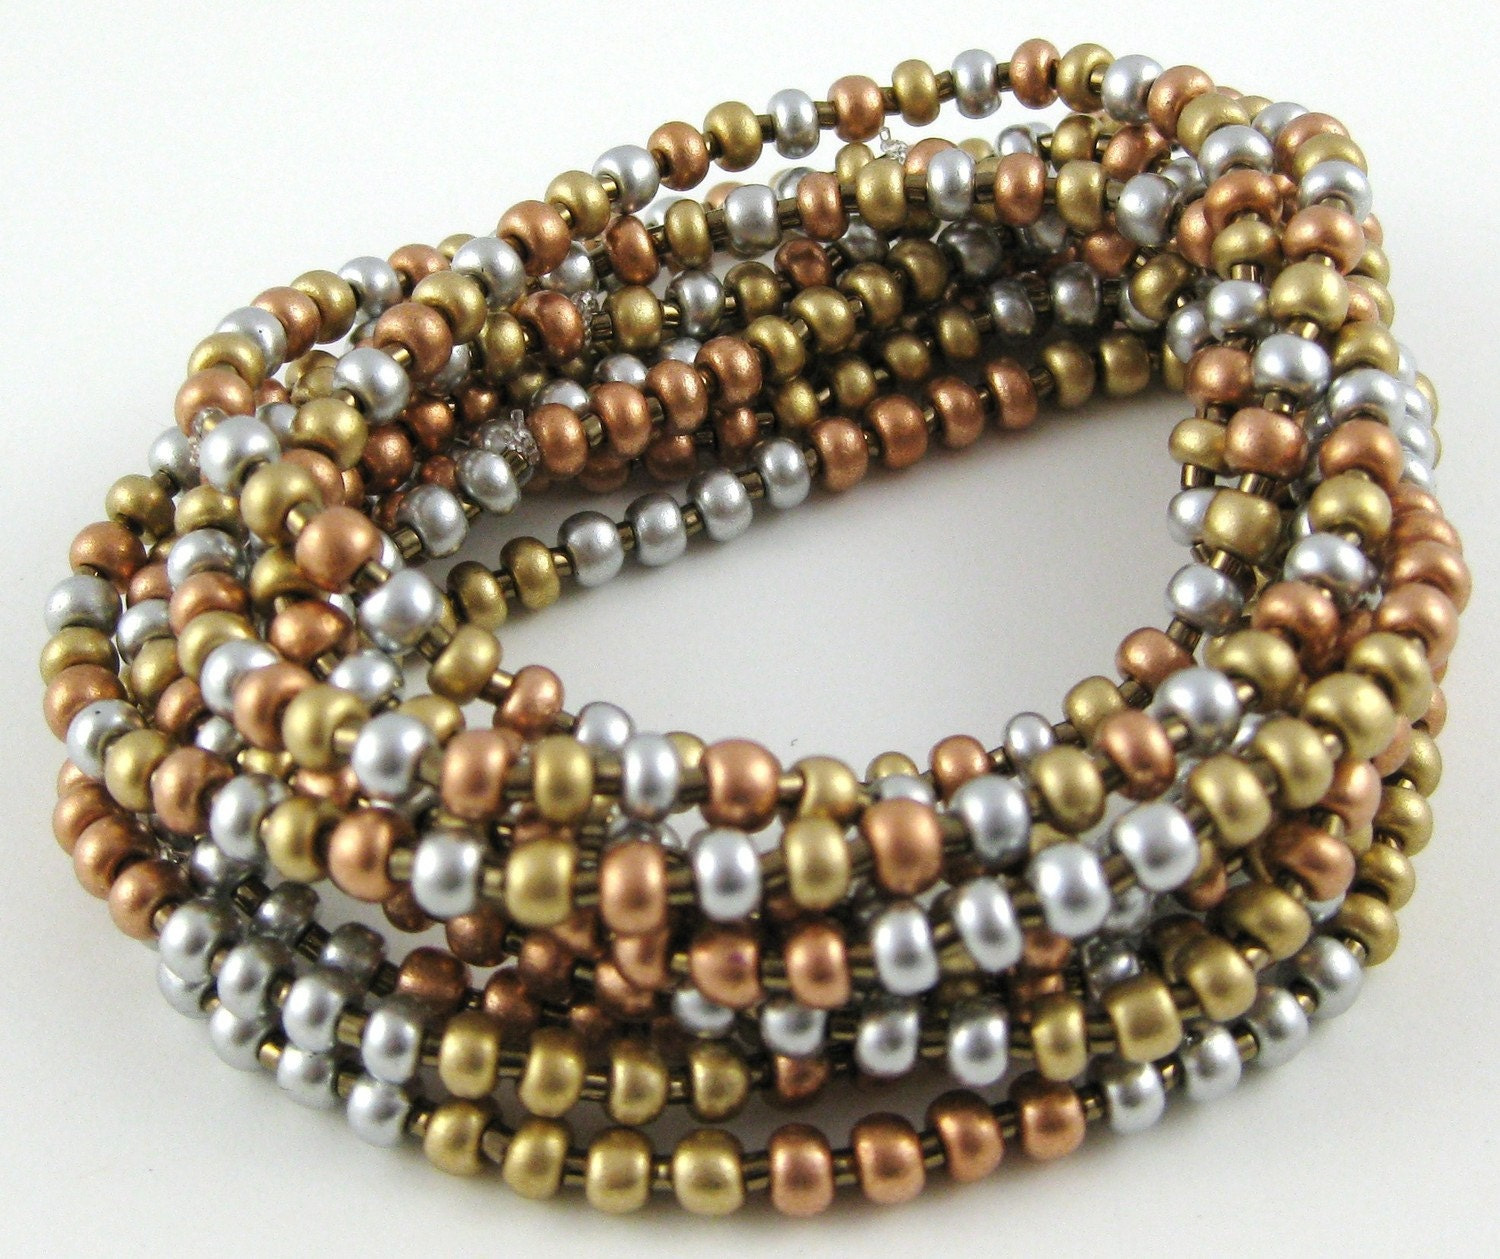 Small Size Beads: Heavy Metal Mix Set Of Ten Stretchy Seed Bead Bracelets